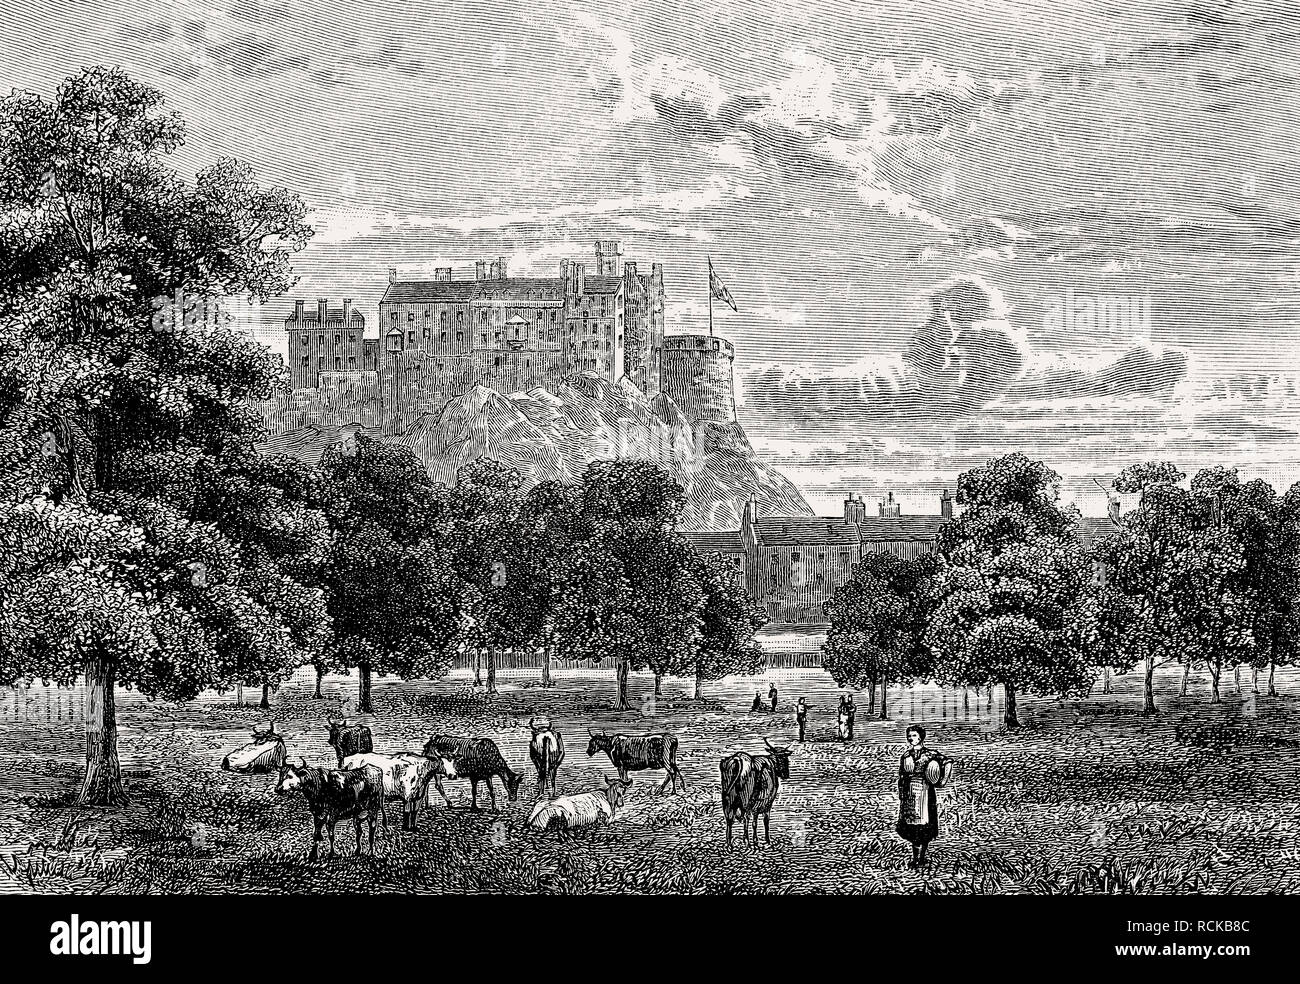 The Meadows, large public park in Edinburgh, Scotland, 19th century - Stock Image